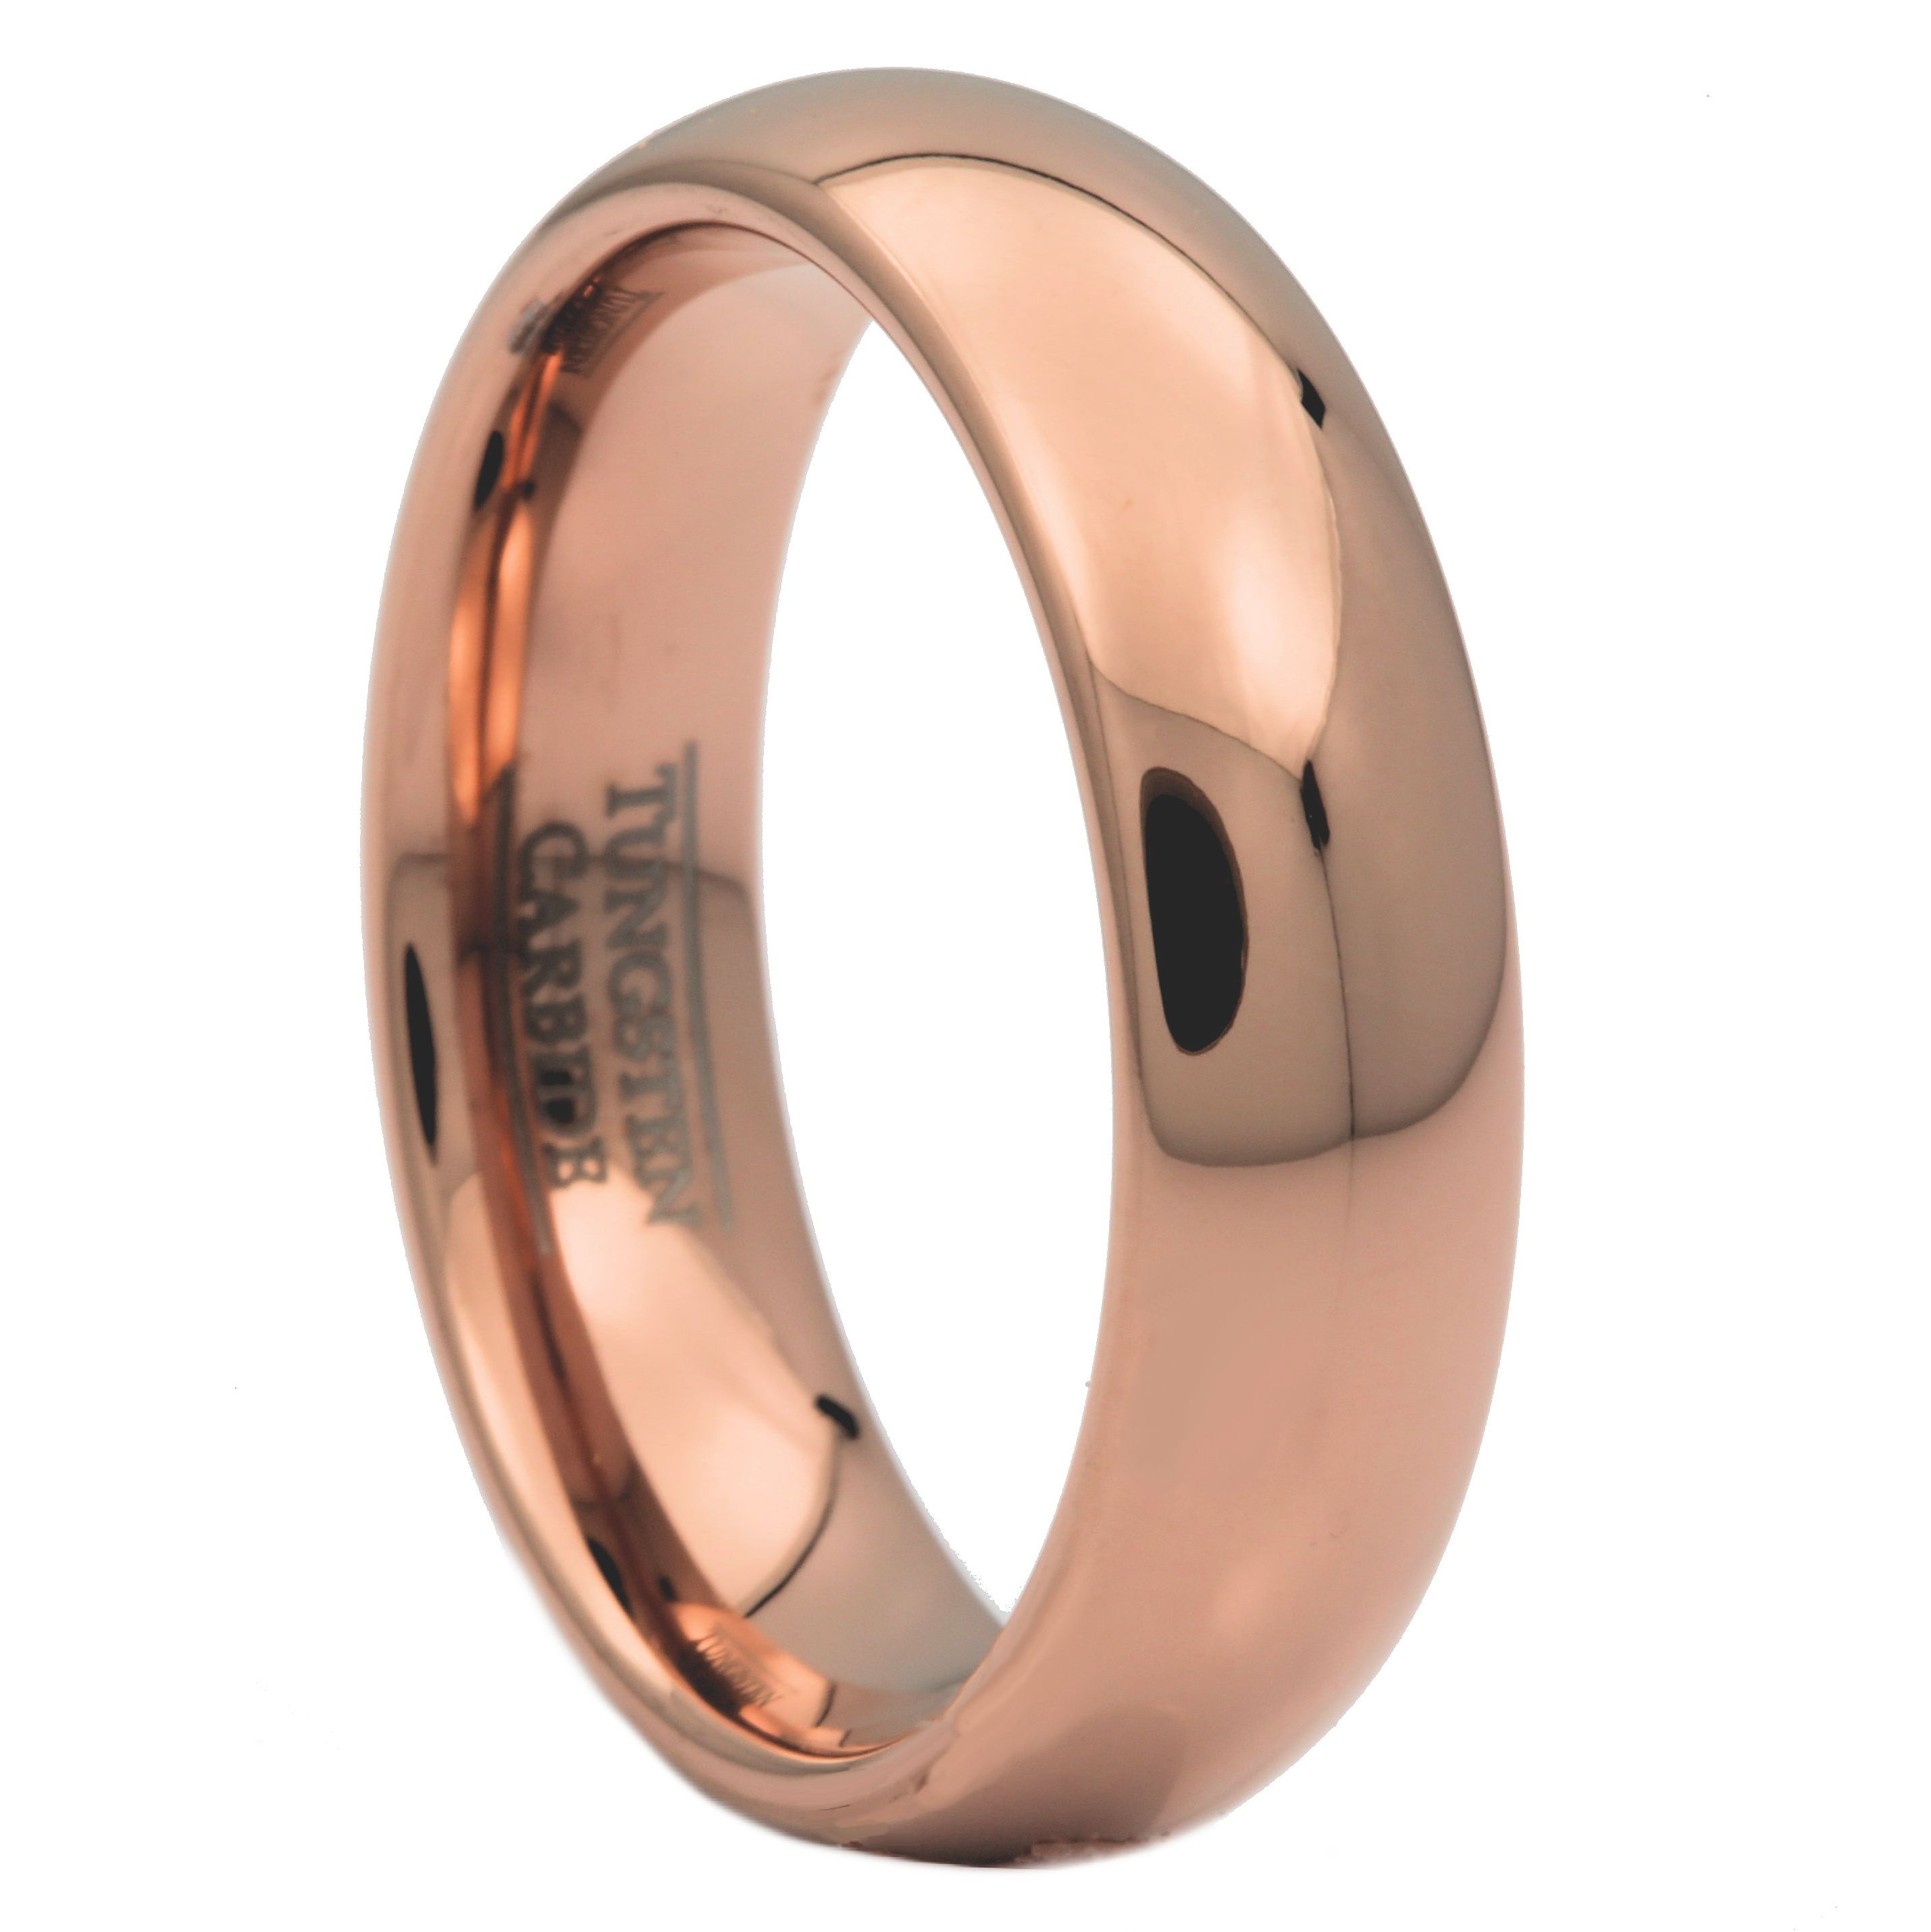 2-3-4-or-6mm-Rose-Gold-Plated-Ring-Tungsten-Carbide-Wedding-Band thumbnail 7